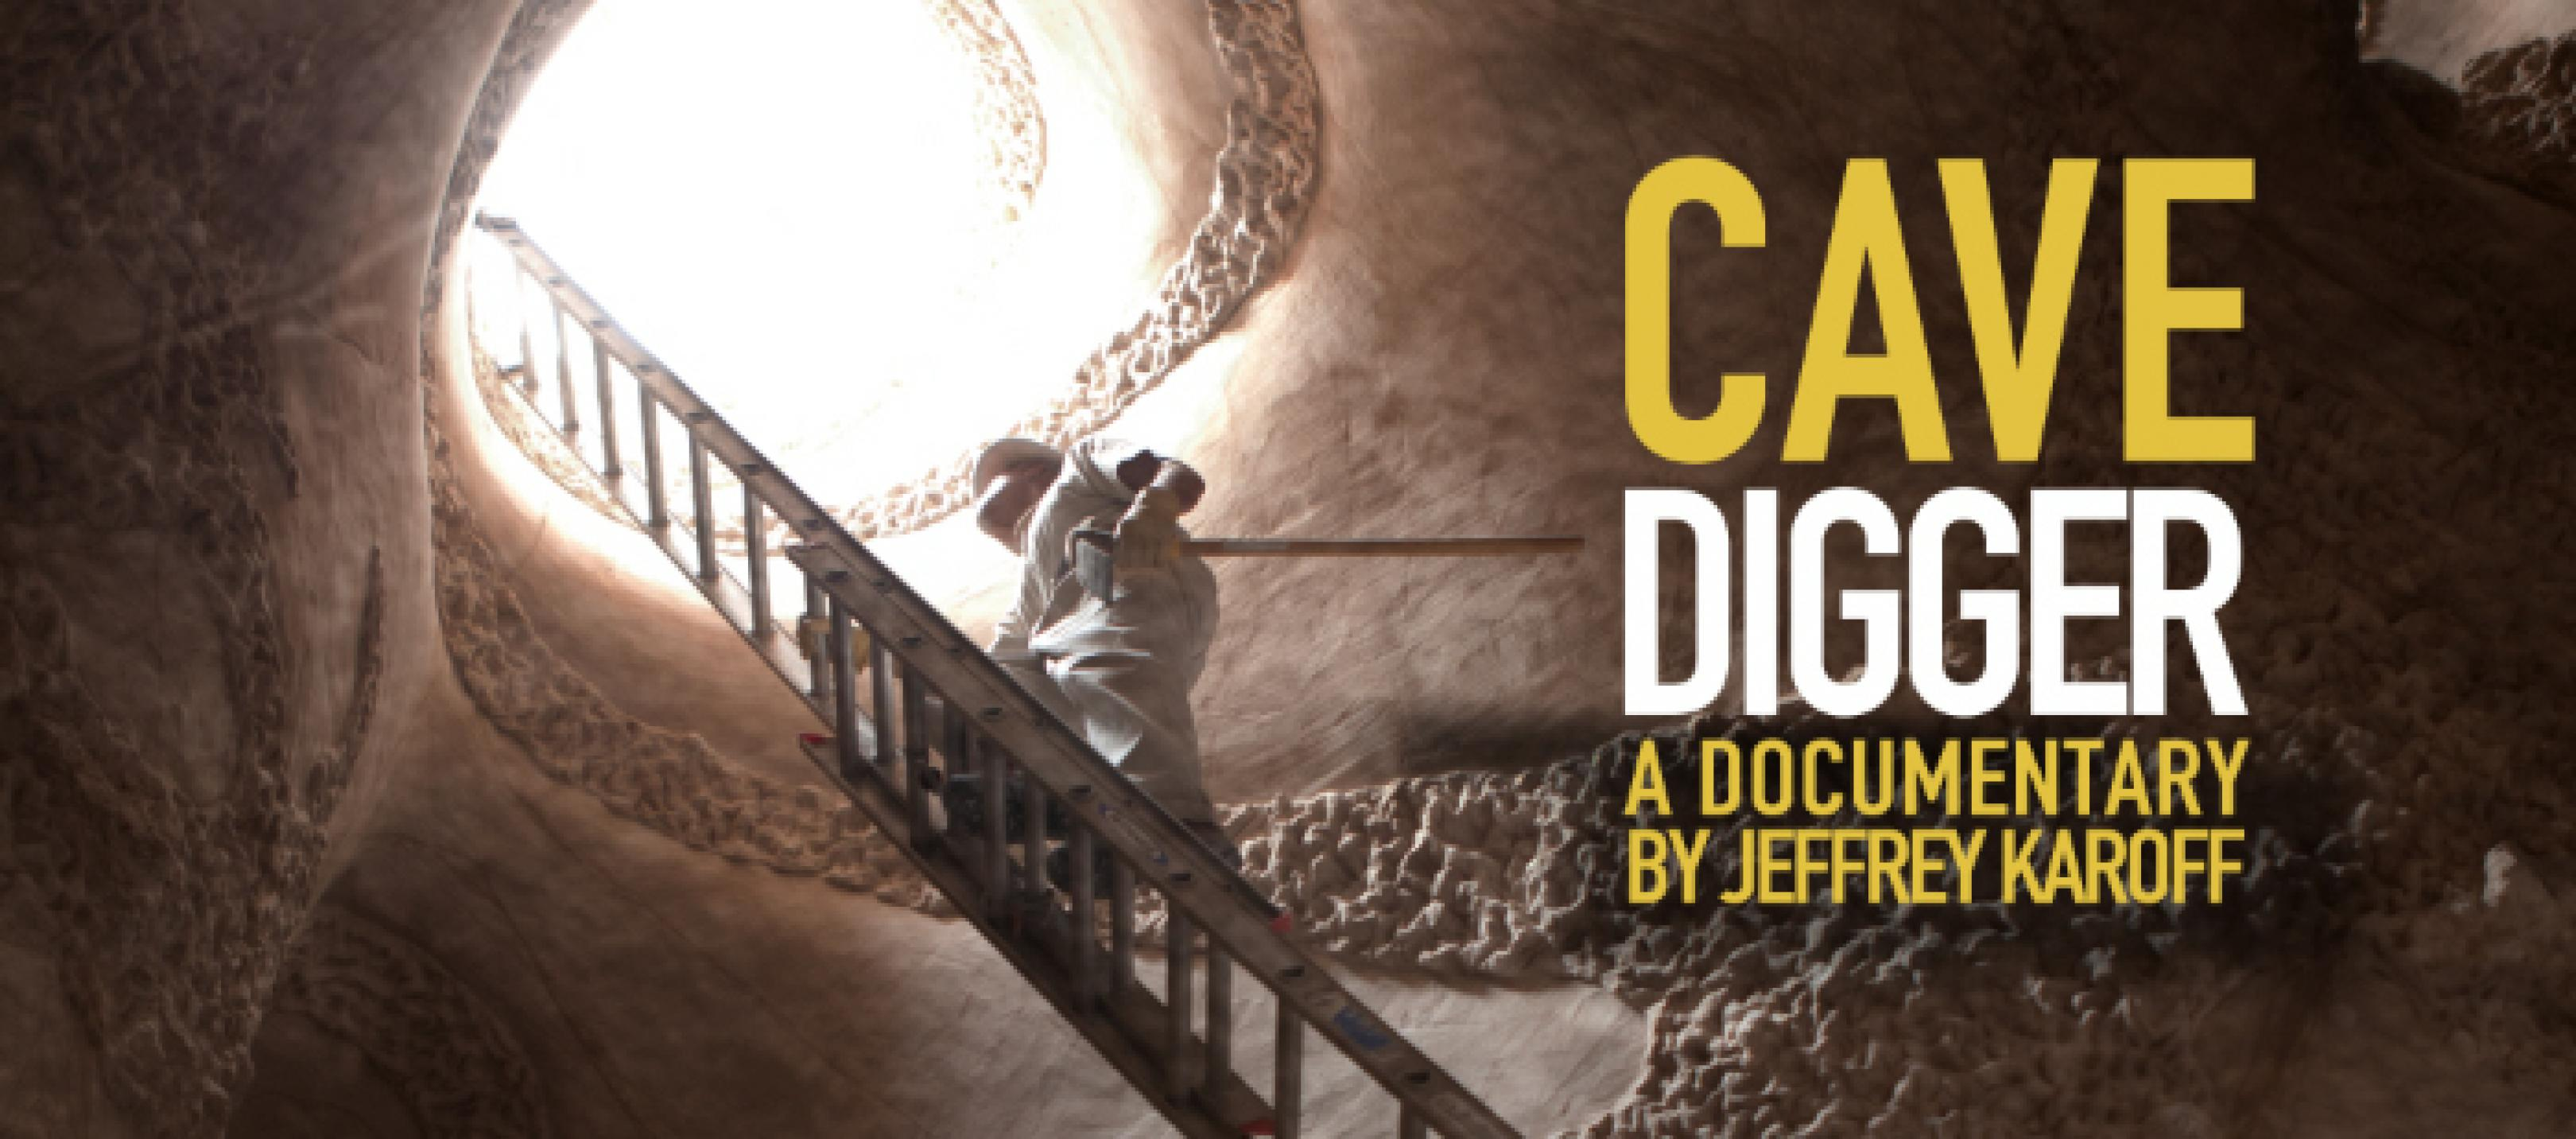 publicity image for Friday Night Film - Cavedigger